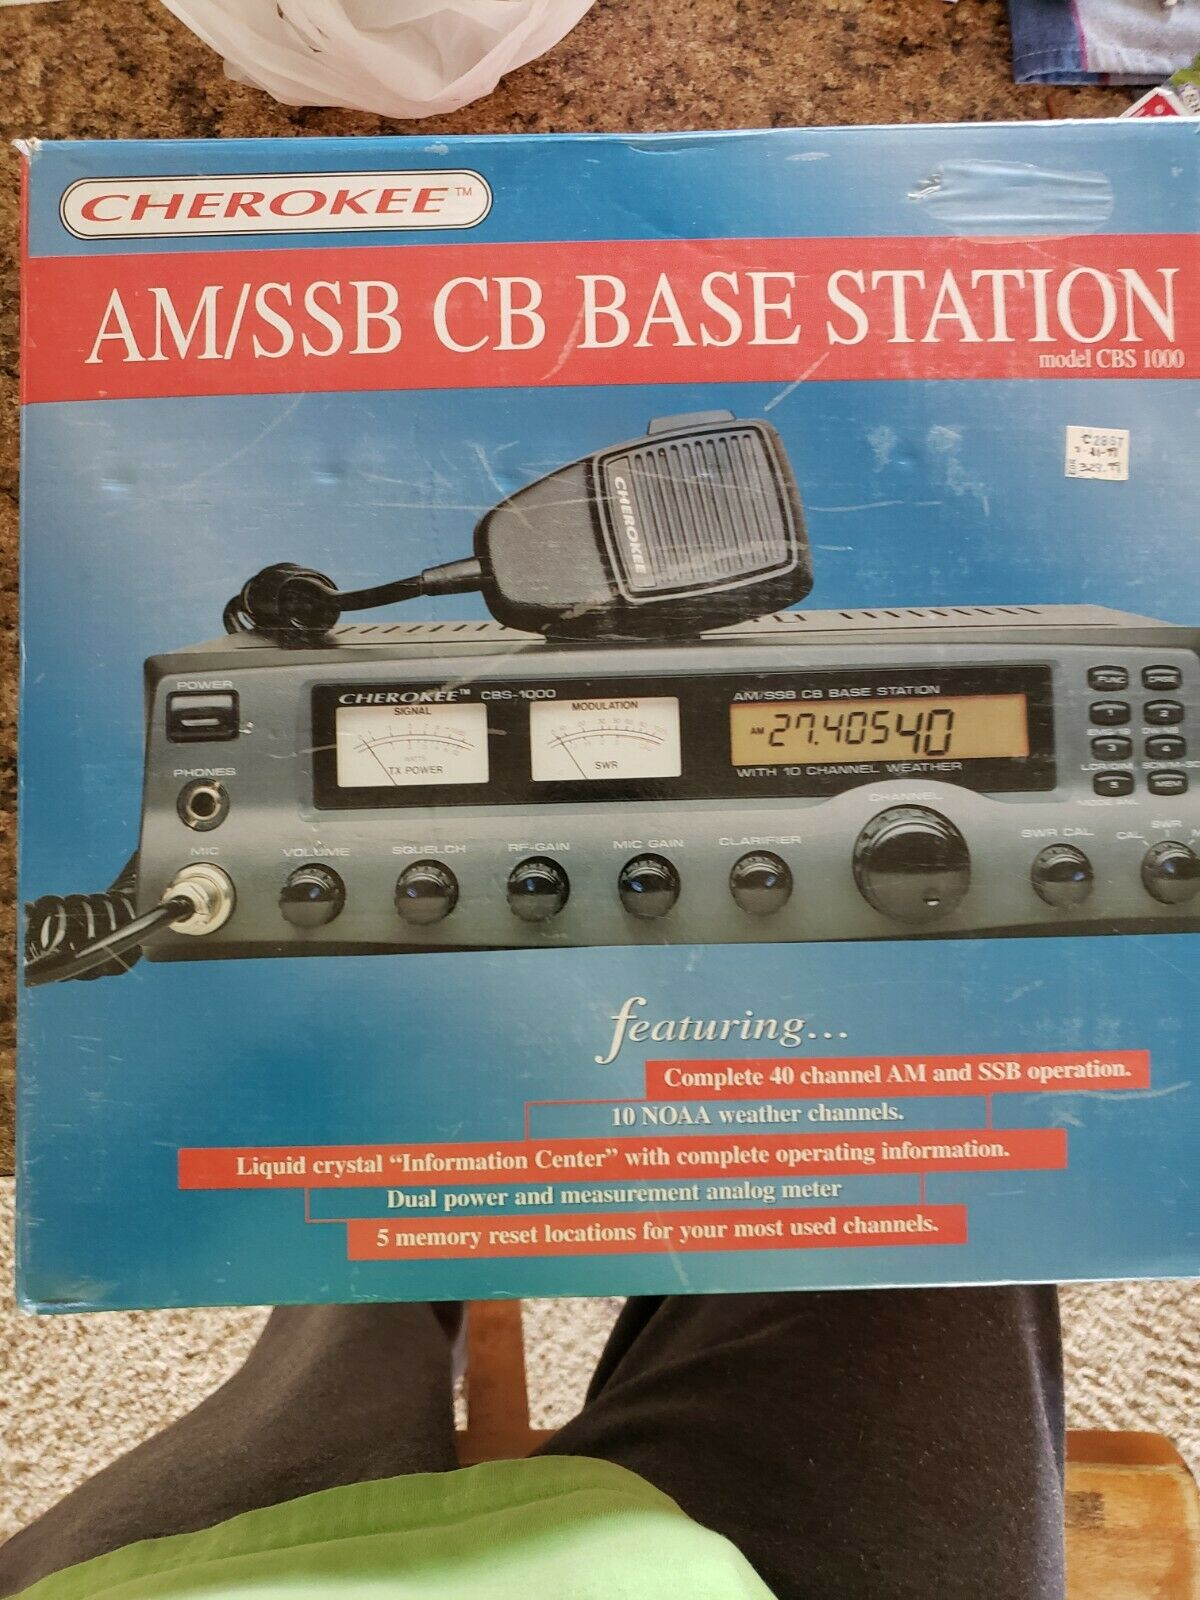 Cherokee AM/SSB 40 ch. Base Station model CBS1000. new in box. Buy it now for 325.00